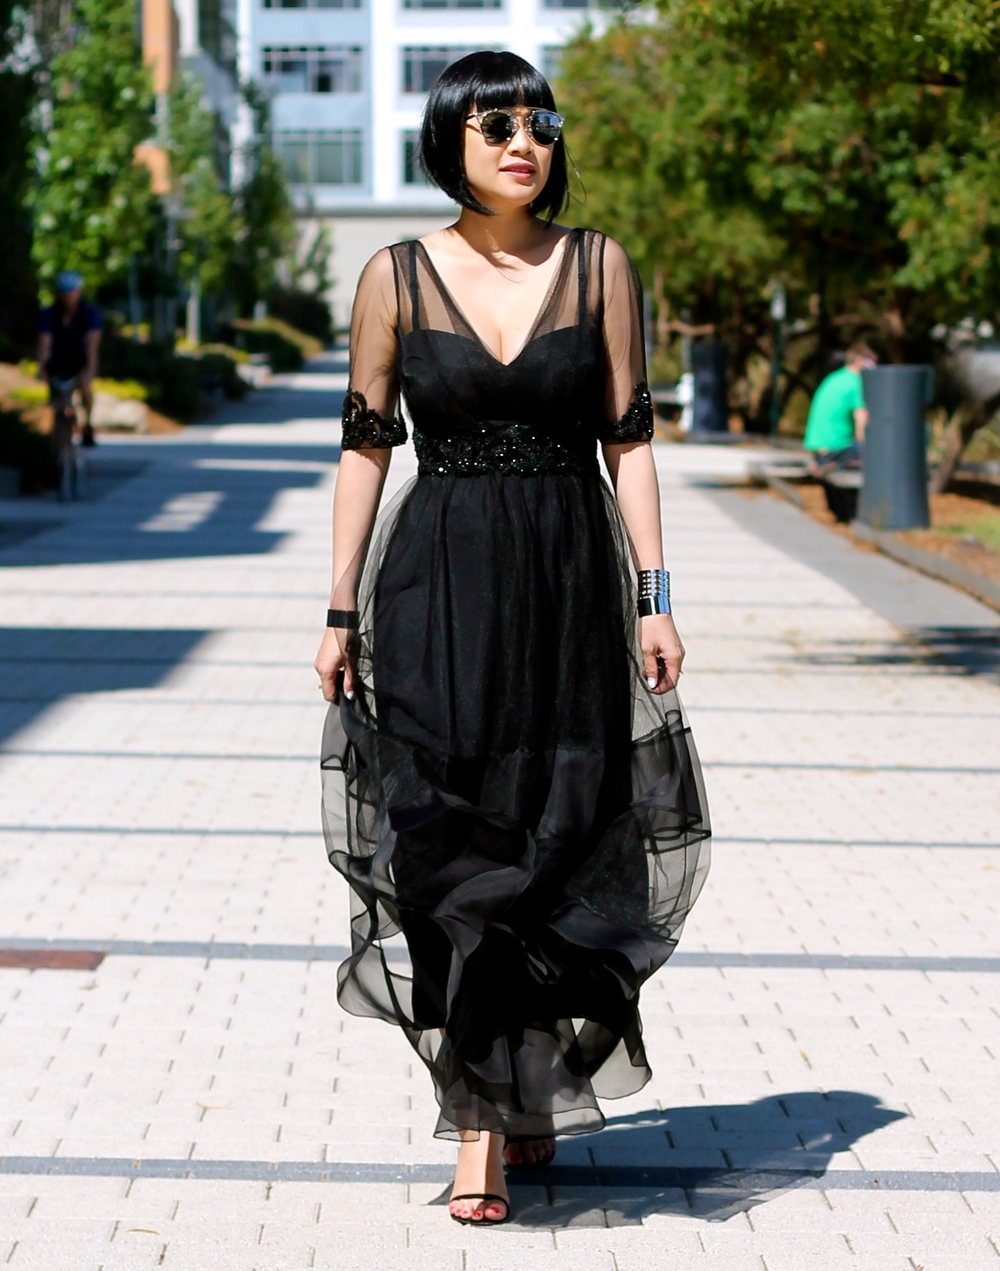 dress c/o Marchesa,  Christian Dior sunglasses ,  Stuart Weitzman shoes ,  Svelte Metals jewelry